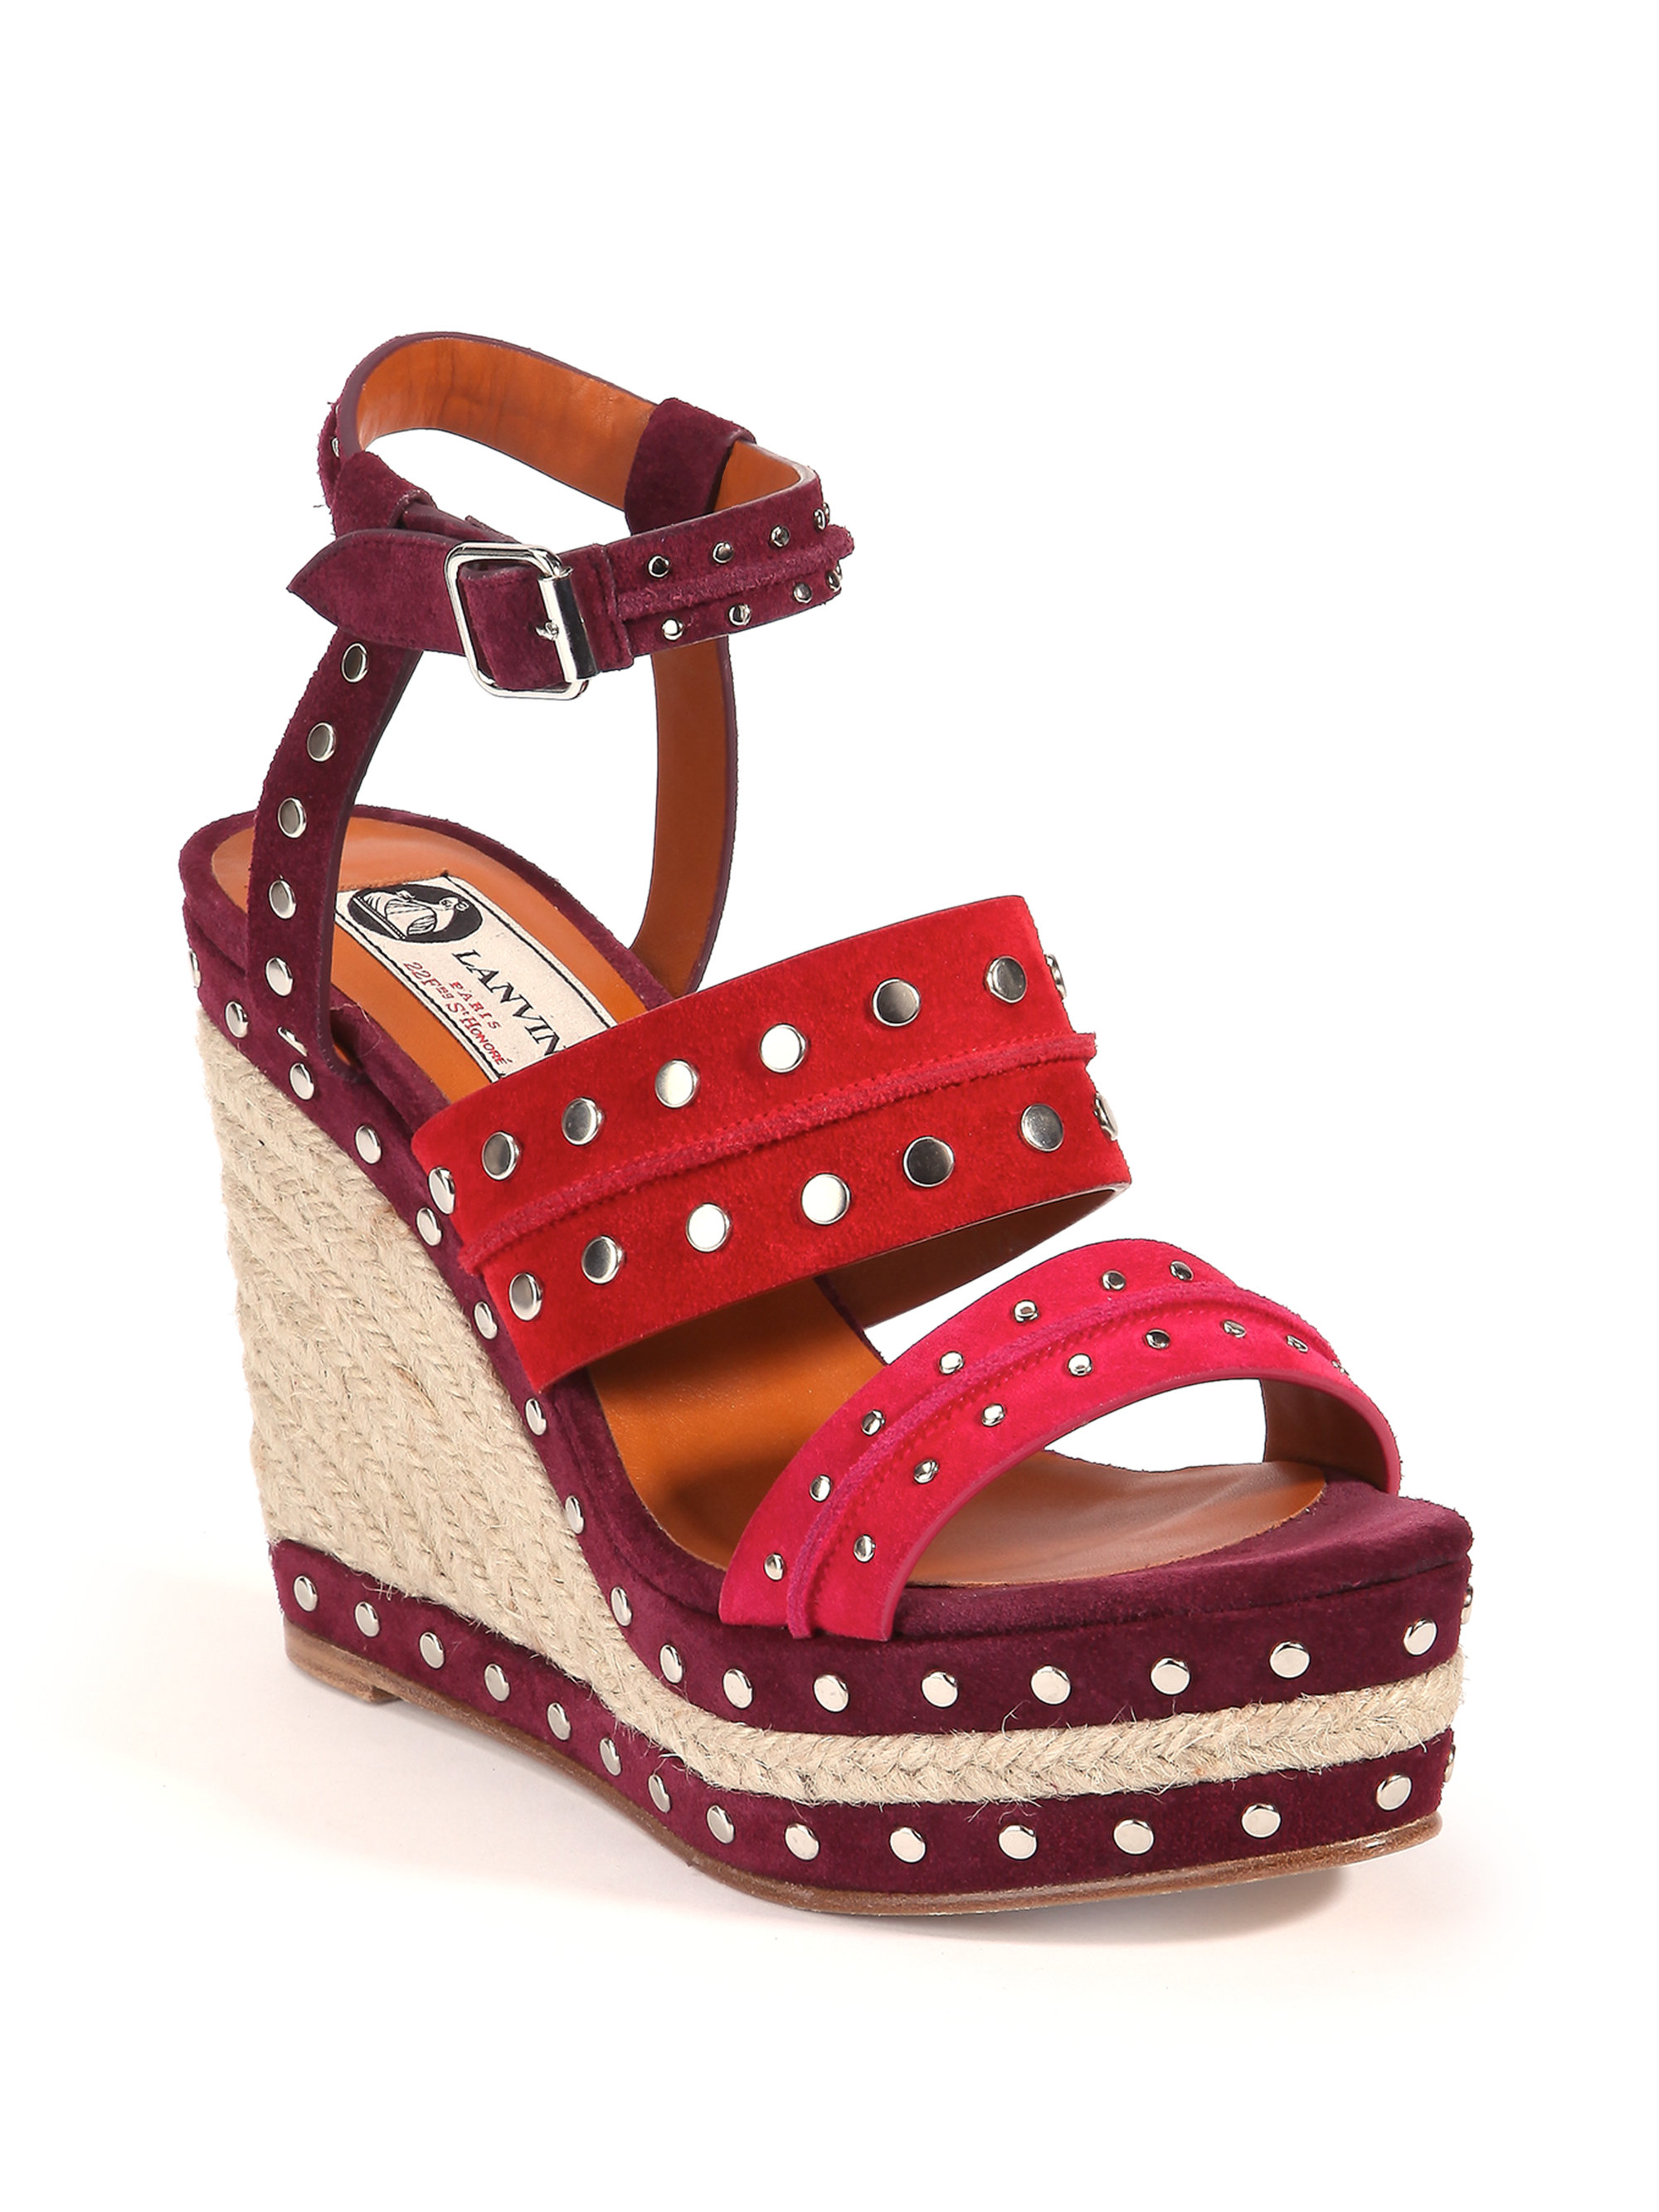 Pre-owned - Red Sandals Lanvin Free Shipping Ebay CRd9Az4C8